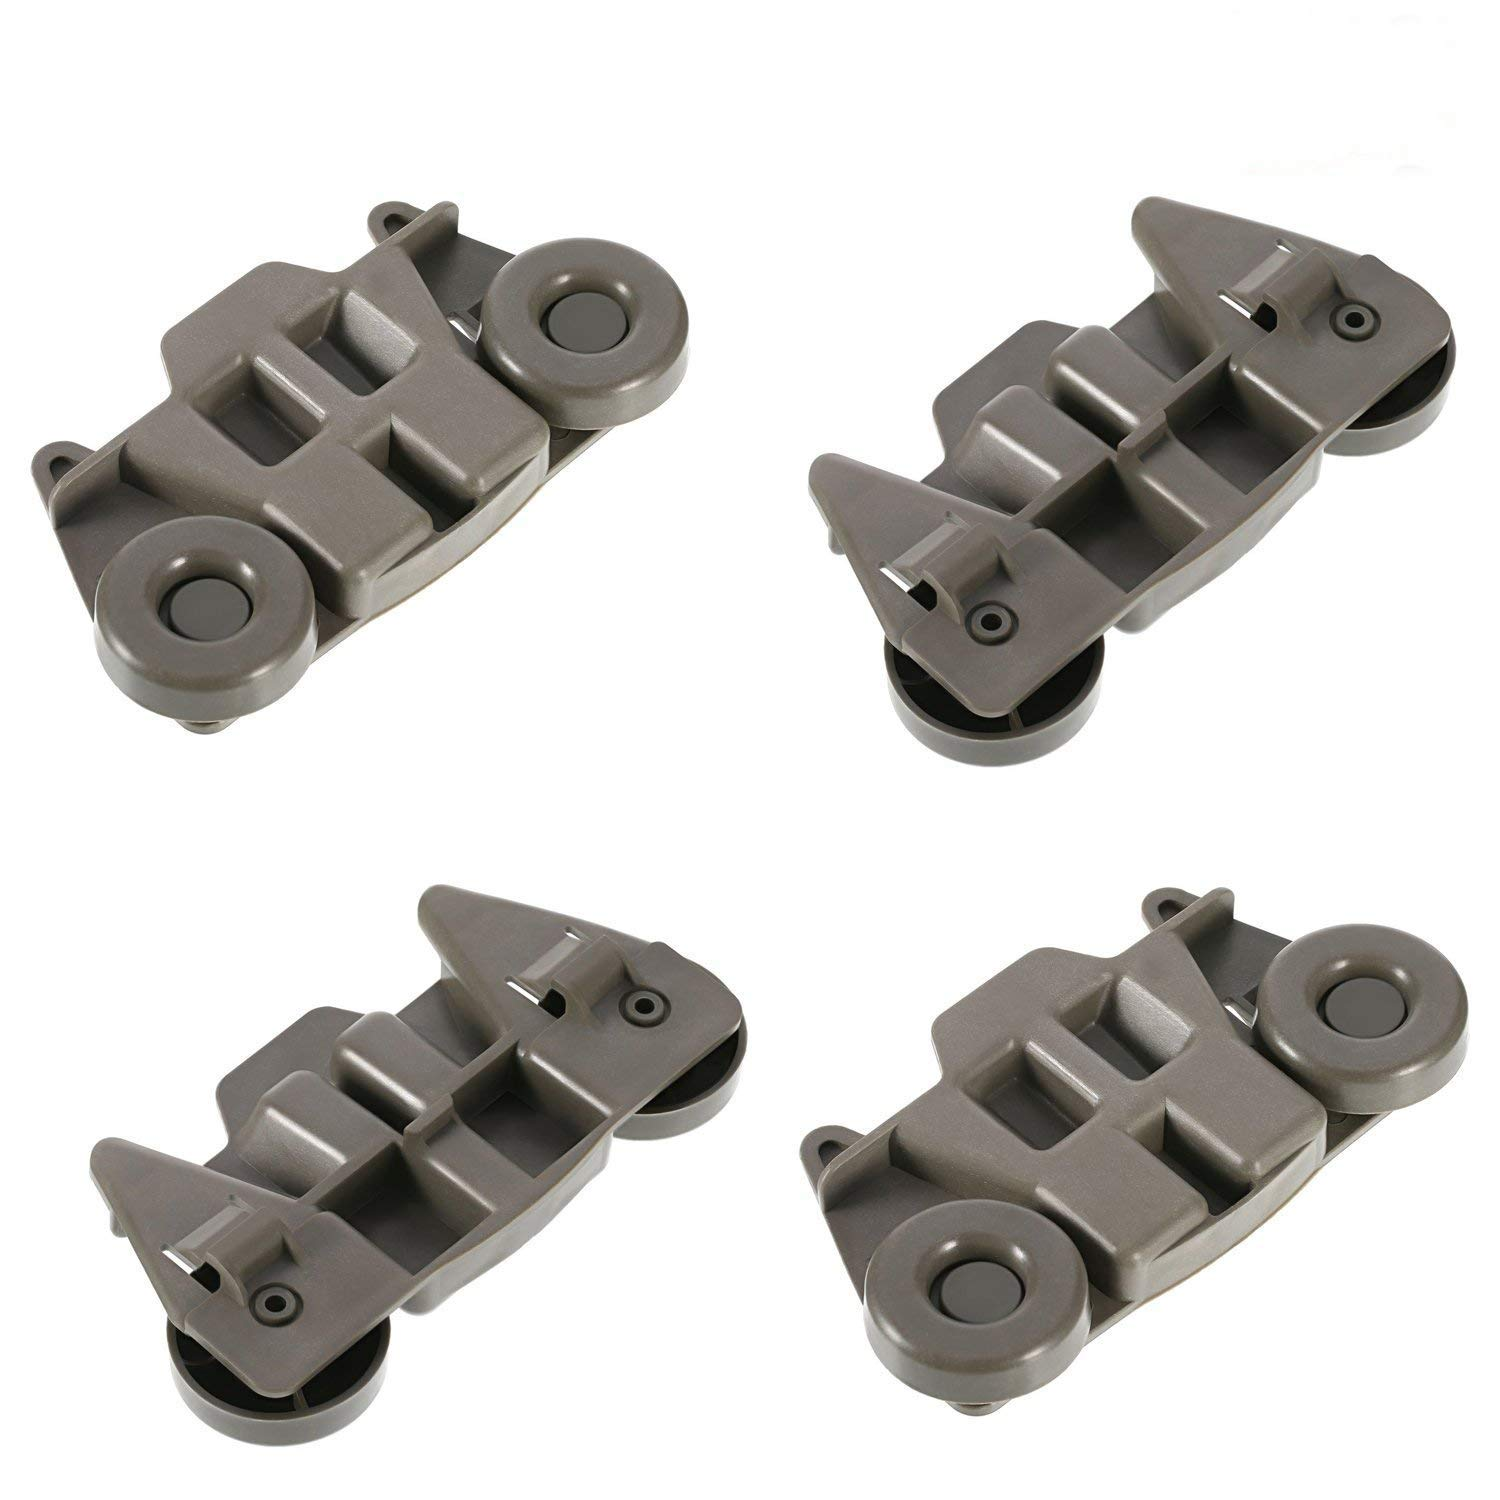 Pack of 4 W10195416 Lower Dishwasher Wheel Replacement by Tworiver, Exact Fits for Whirlpool & Kenmore Dish Rack, Replaces AP5983730, PS11722152, W10195416VP